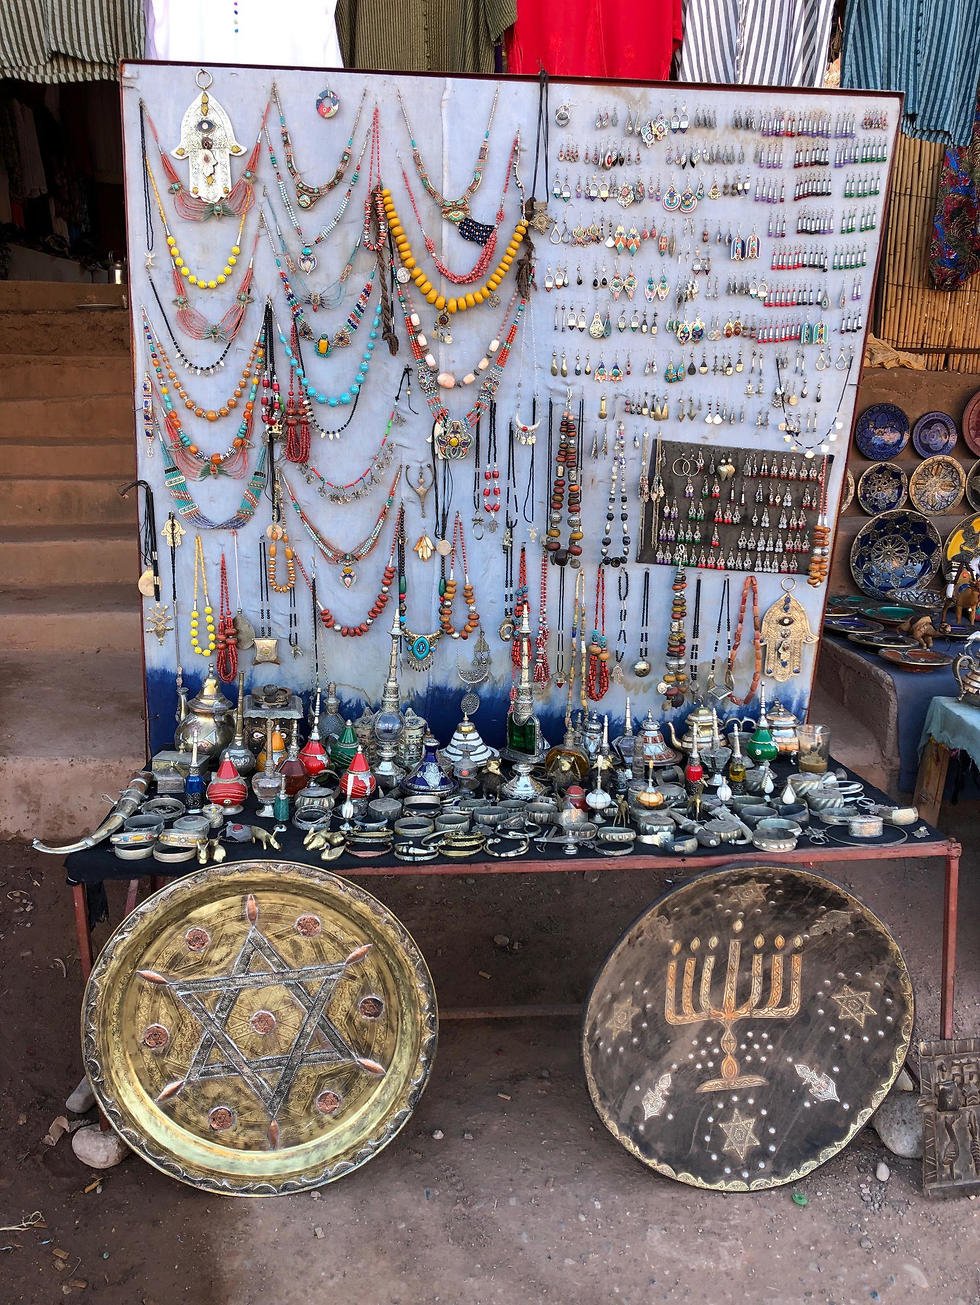 Platters adorned with a menorah and Jewish stars in an outdoor stall near Ksar of Ait-Ben-Haddou